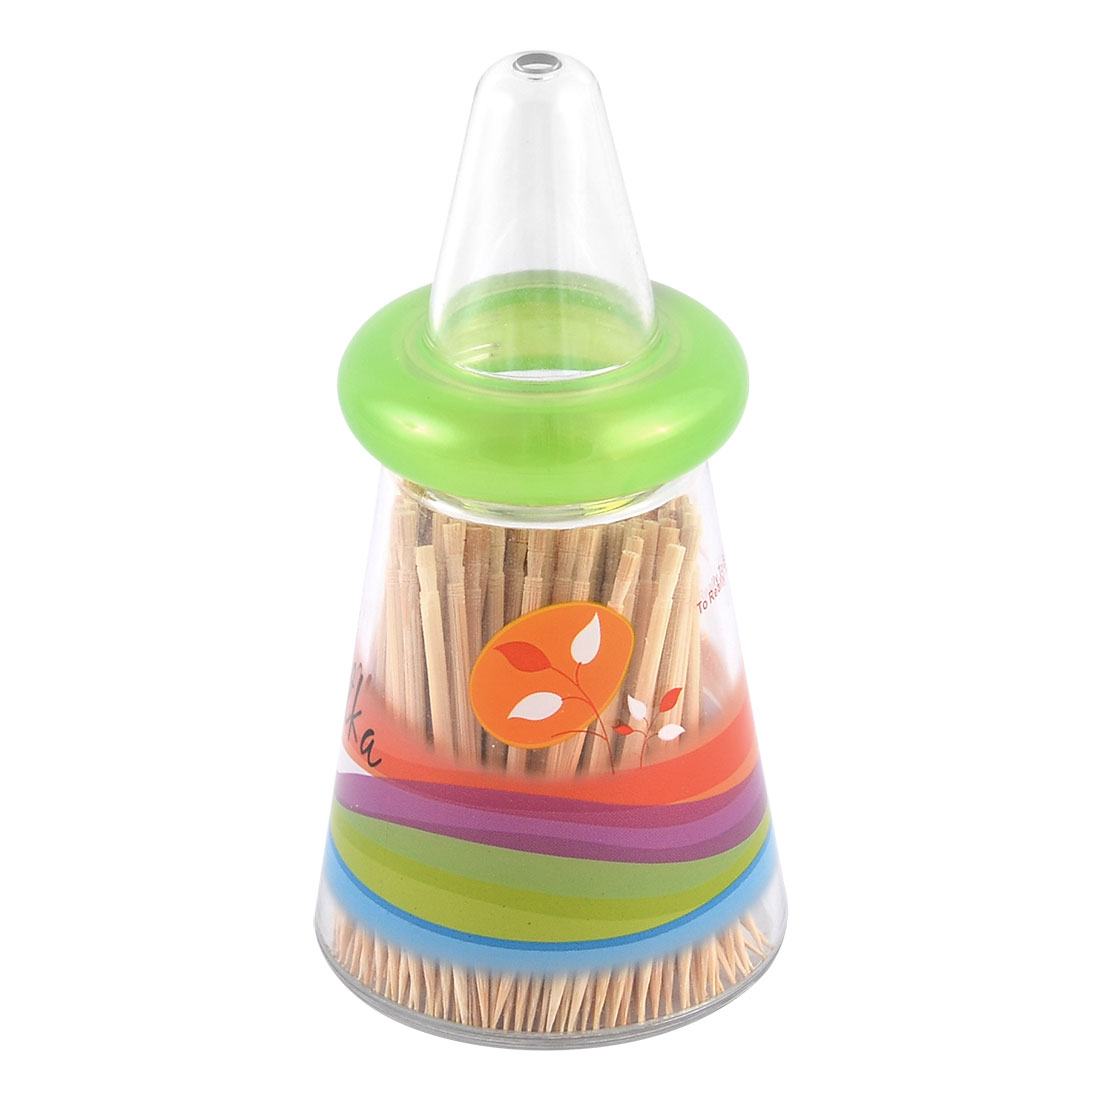 Home Cafe Plastic Taper Shaped Supper Toothpick Holder Container Storage Case Box Green